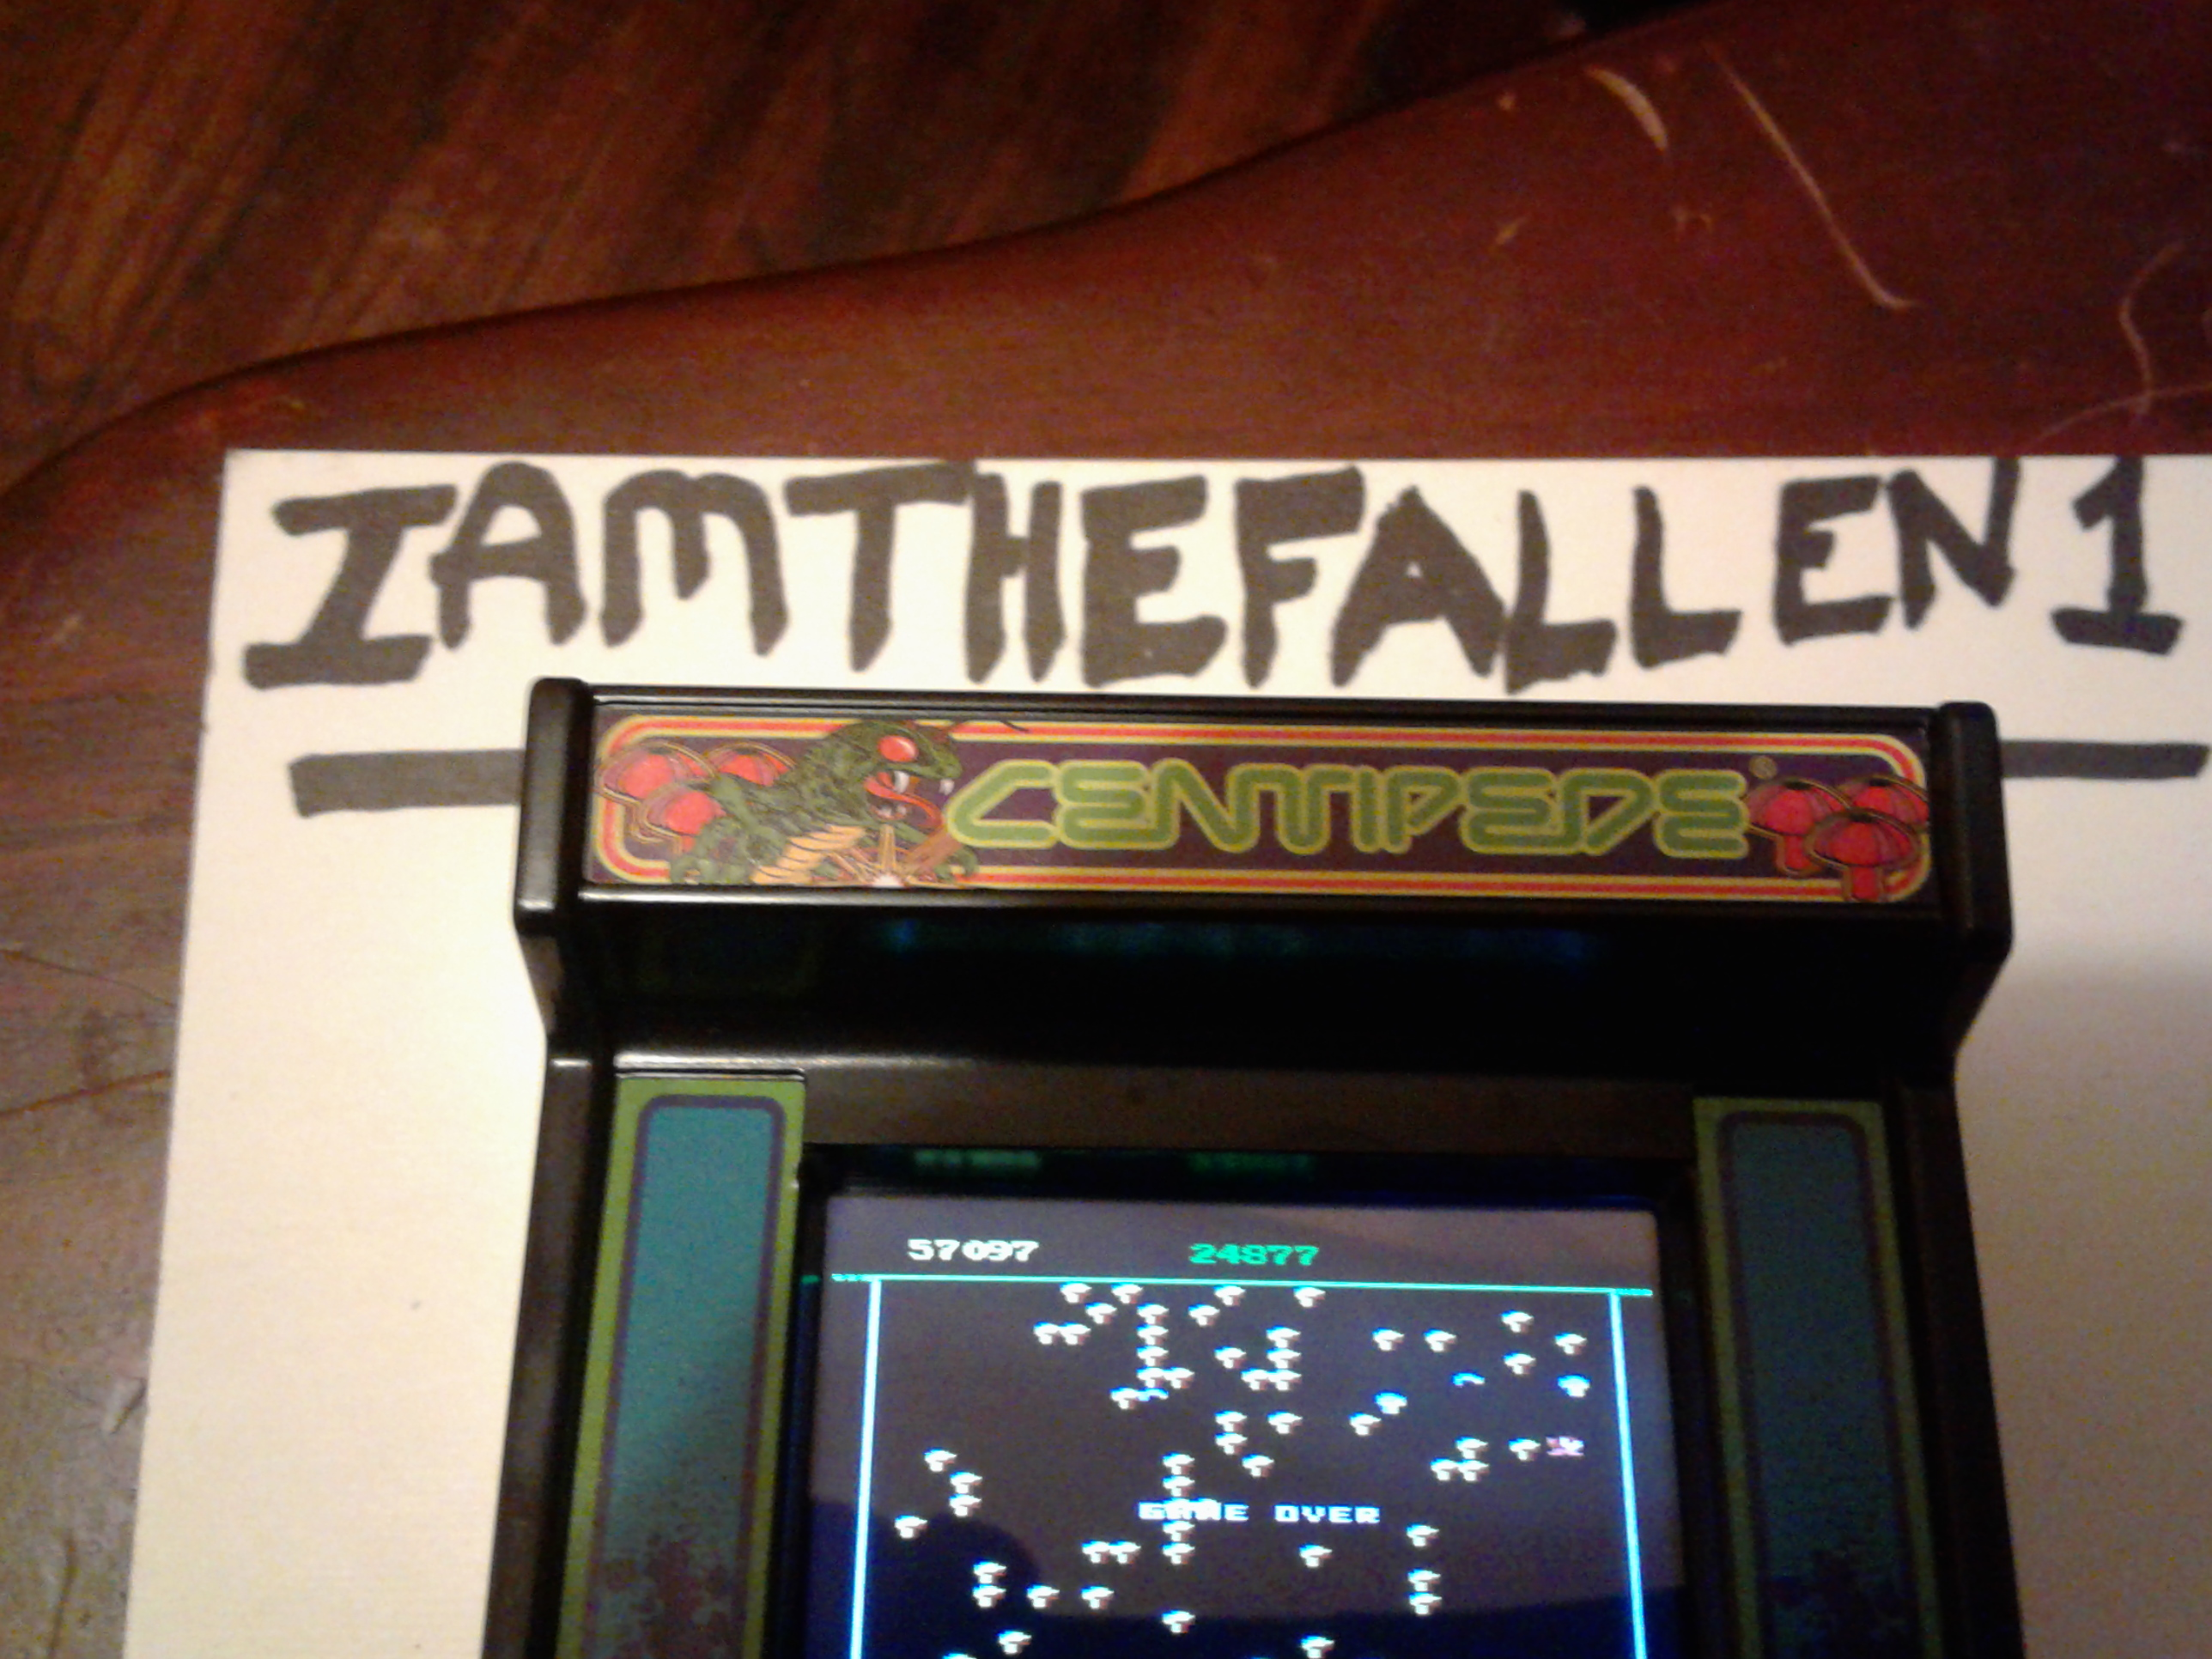 iamthefallen1: Arcade Classics 03: Centipede (Dedicated Handheld) 57,097 points on 2017-06-20 16:45:31